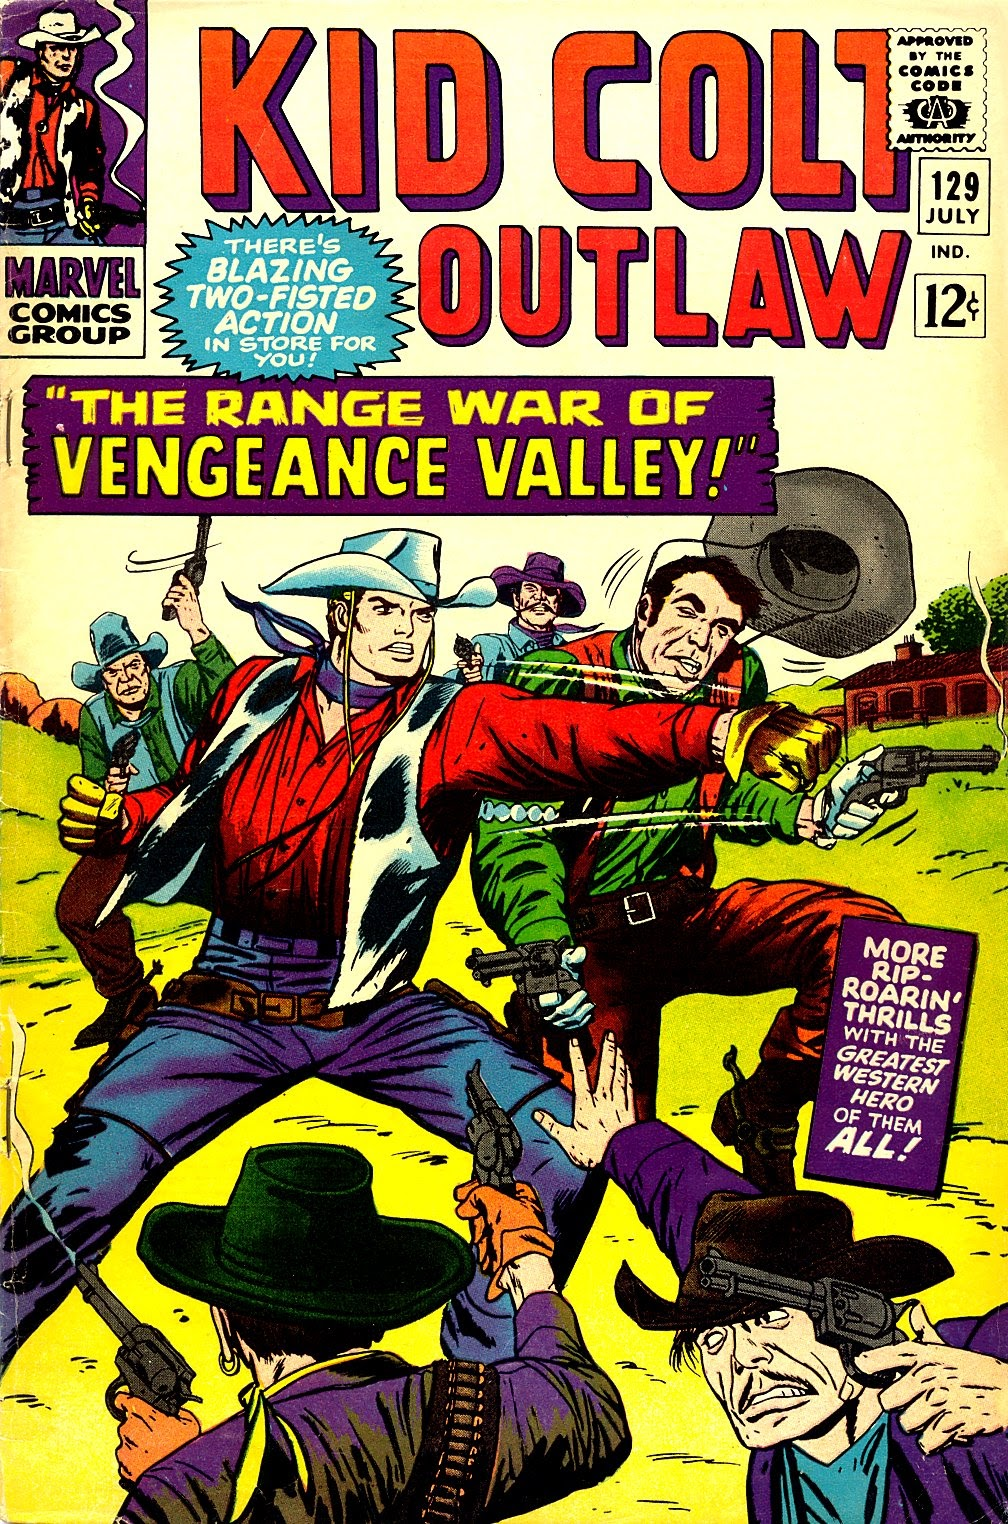 Kid Colt Outlaw issue 129 - Page 1